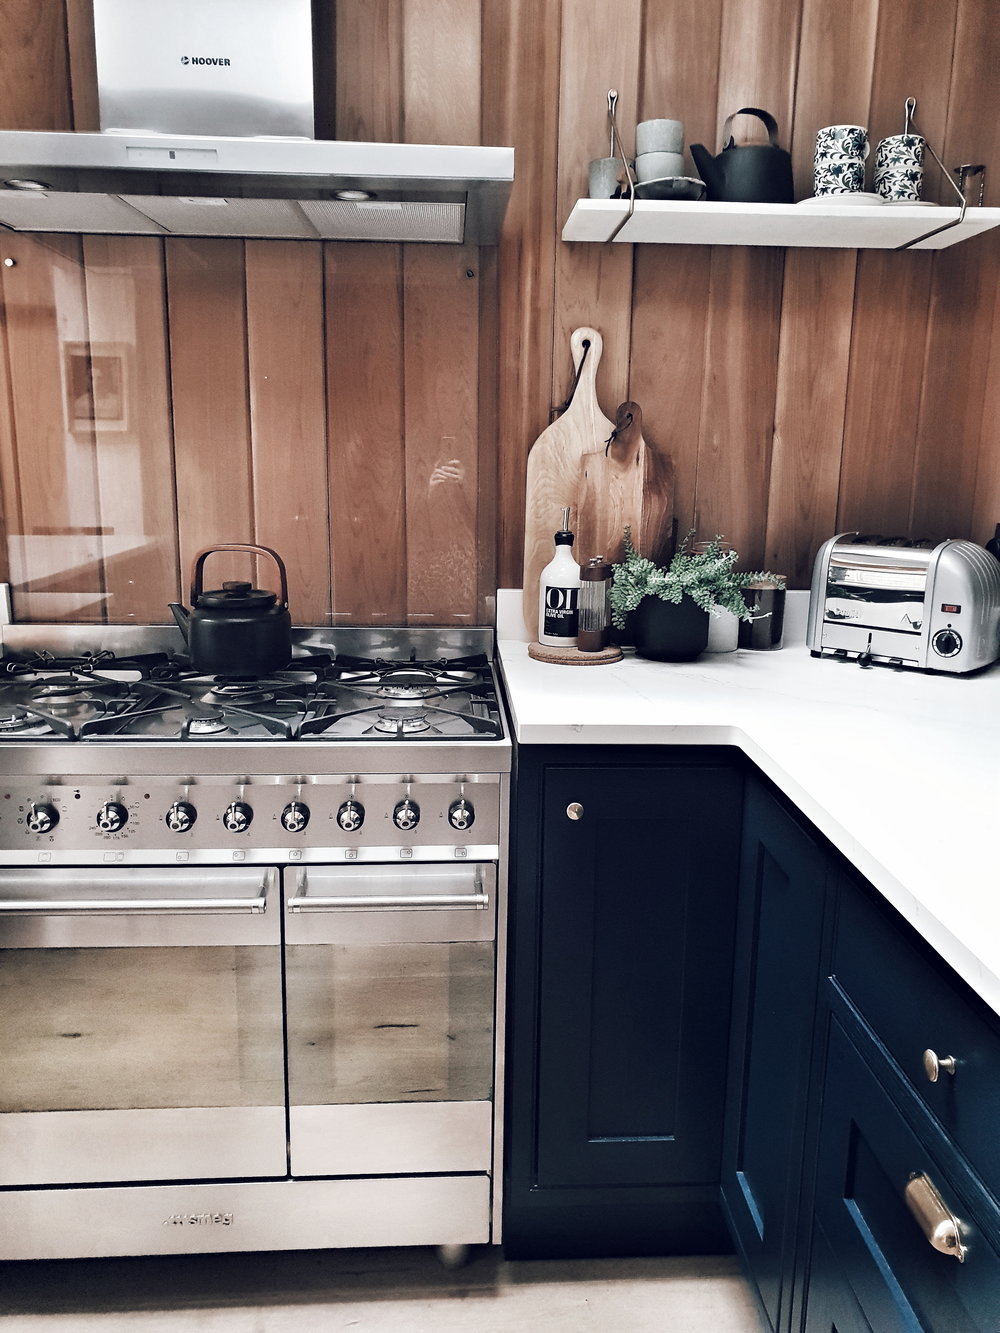 I love the modern rustic feel created by the timber cladding and the lovely earthy ceramics and kitchen accessories Maz has chosen